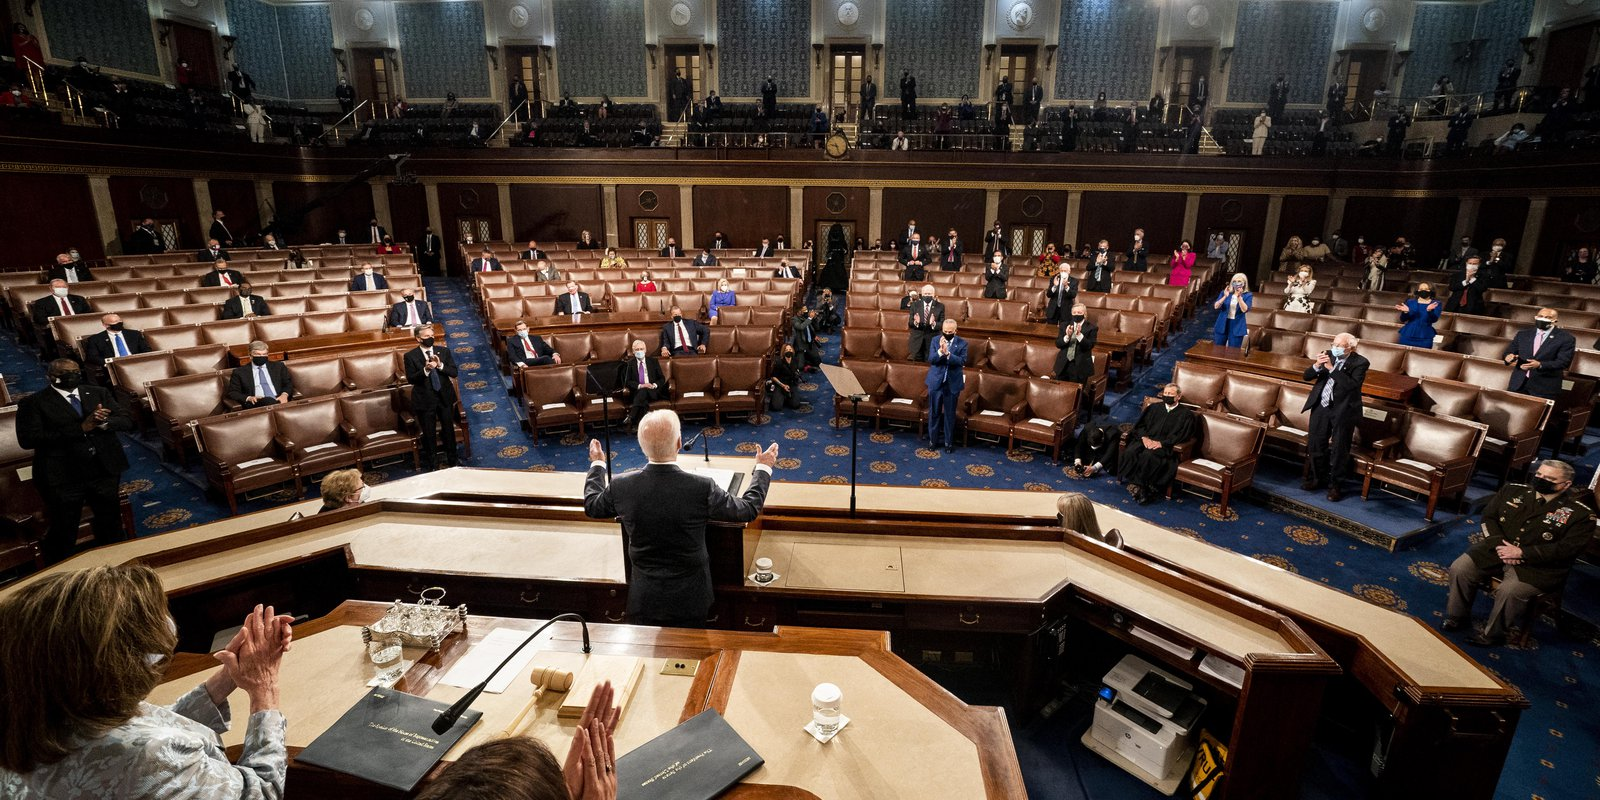 Image — President Joe Biden addresses a Joint Session of Congress, with Speaker of the House Nancy Pelosi and Vice President Kamala Harris behind on the dais. Photo by Melina Mara - Pool/Getty Images.